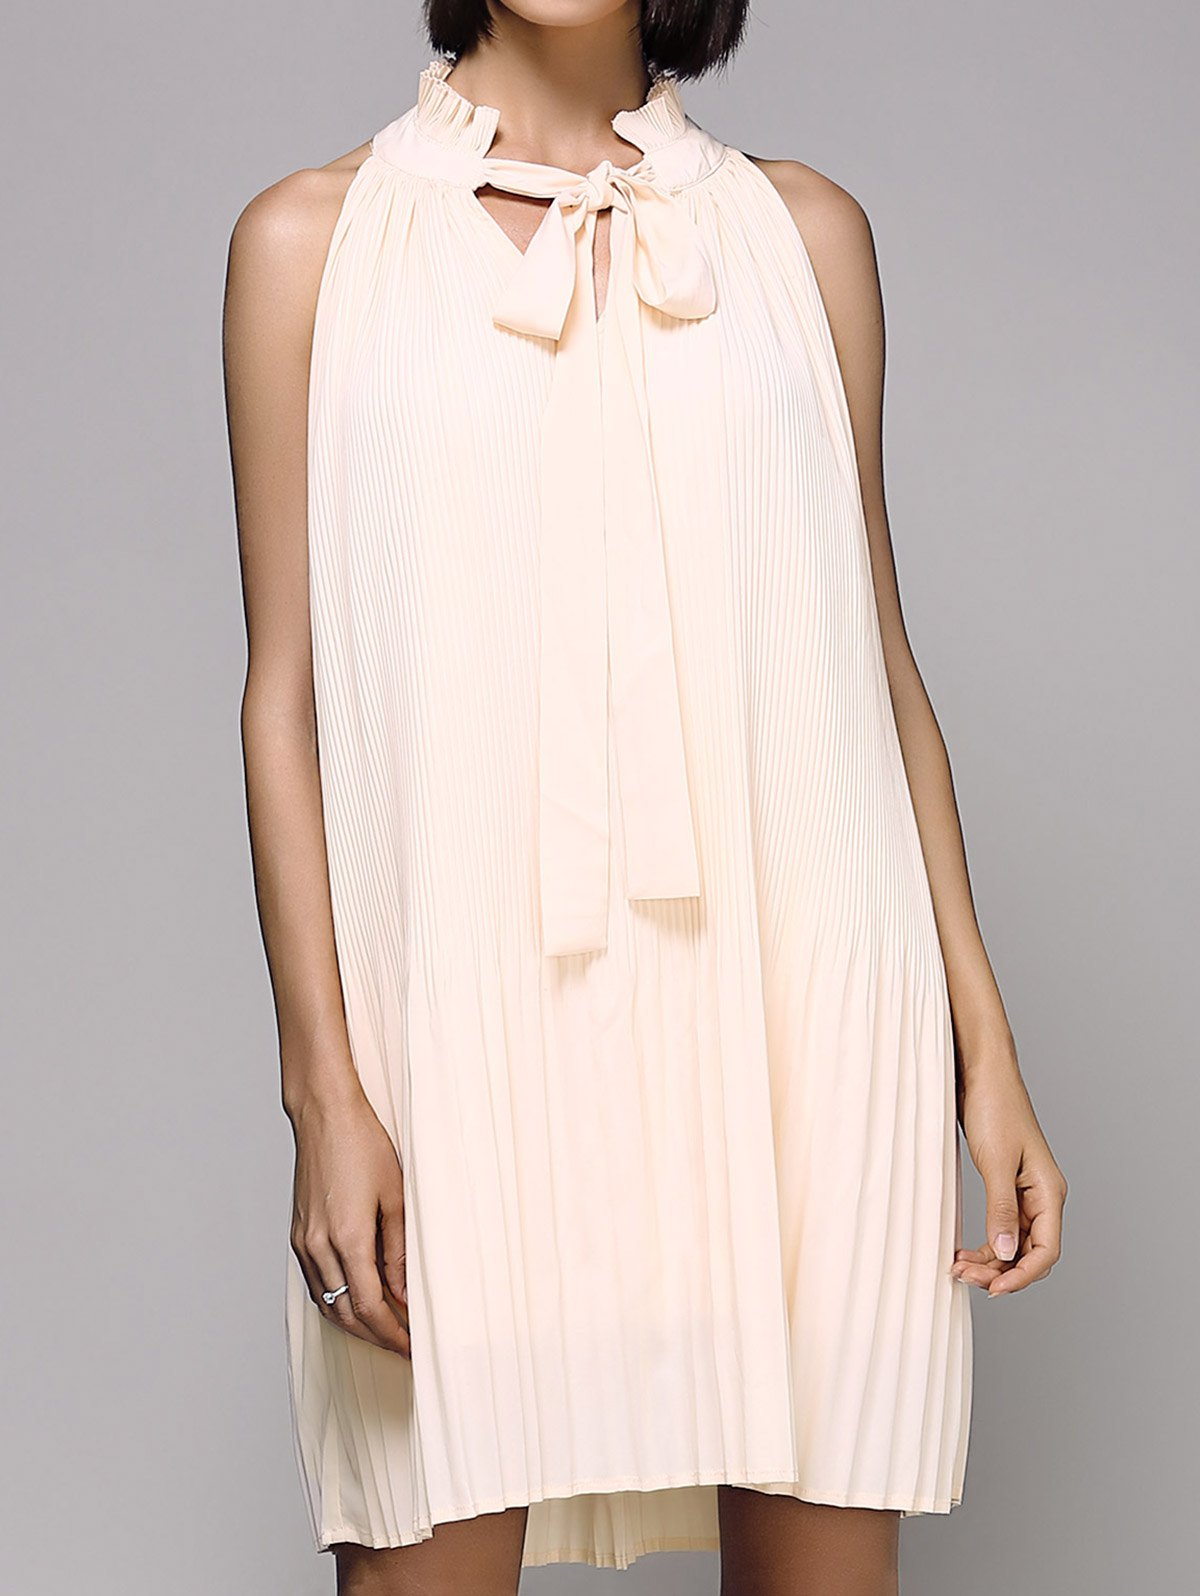 Drawstring Loose Folded Stand Neck Sleeveless DressClothes<br><br><br>Size: 2XL<br>Color: PINK